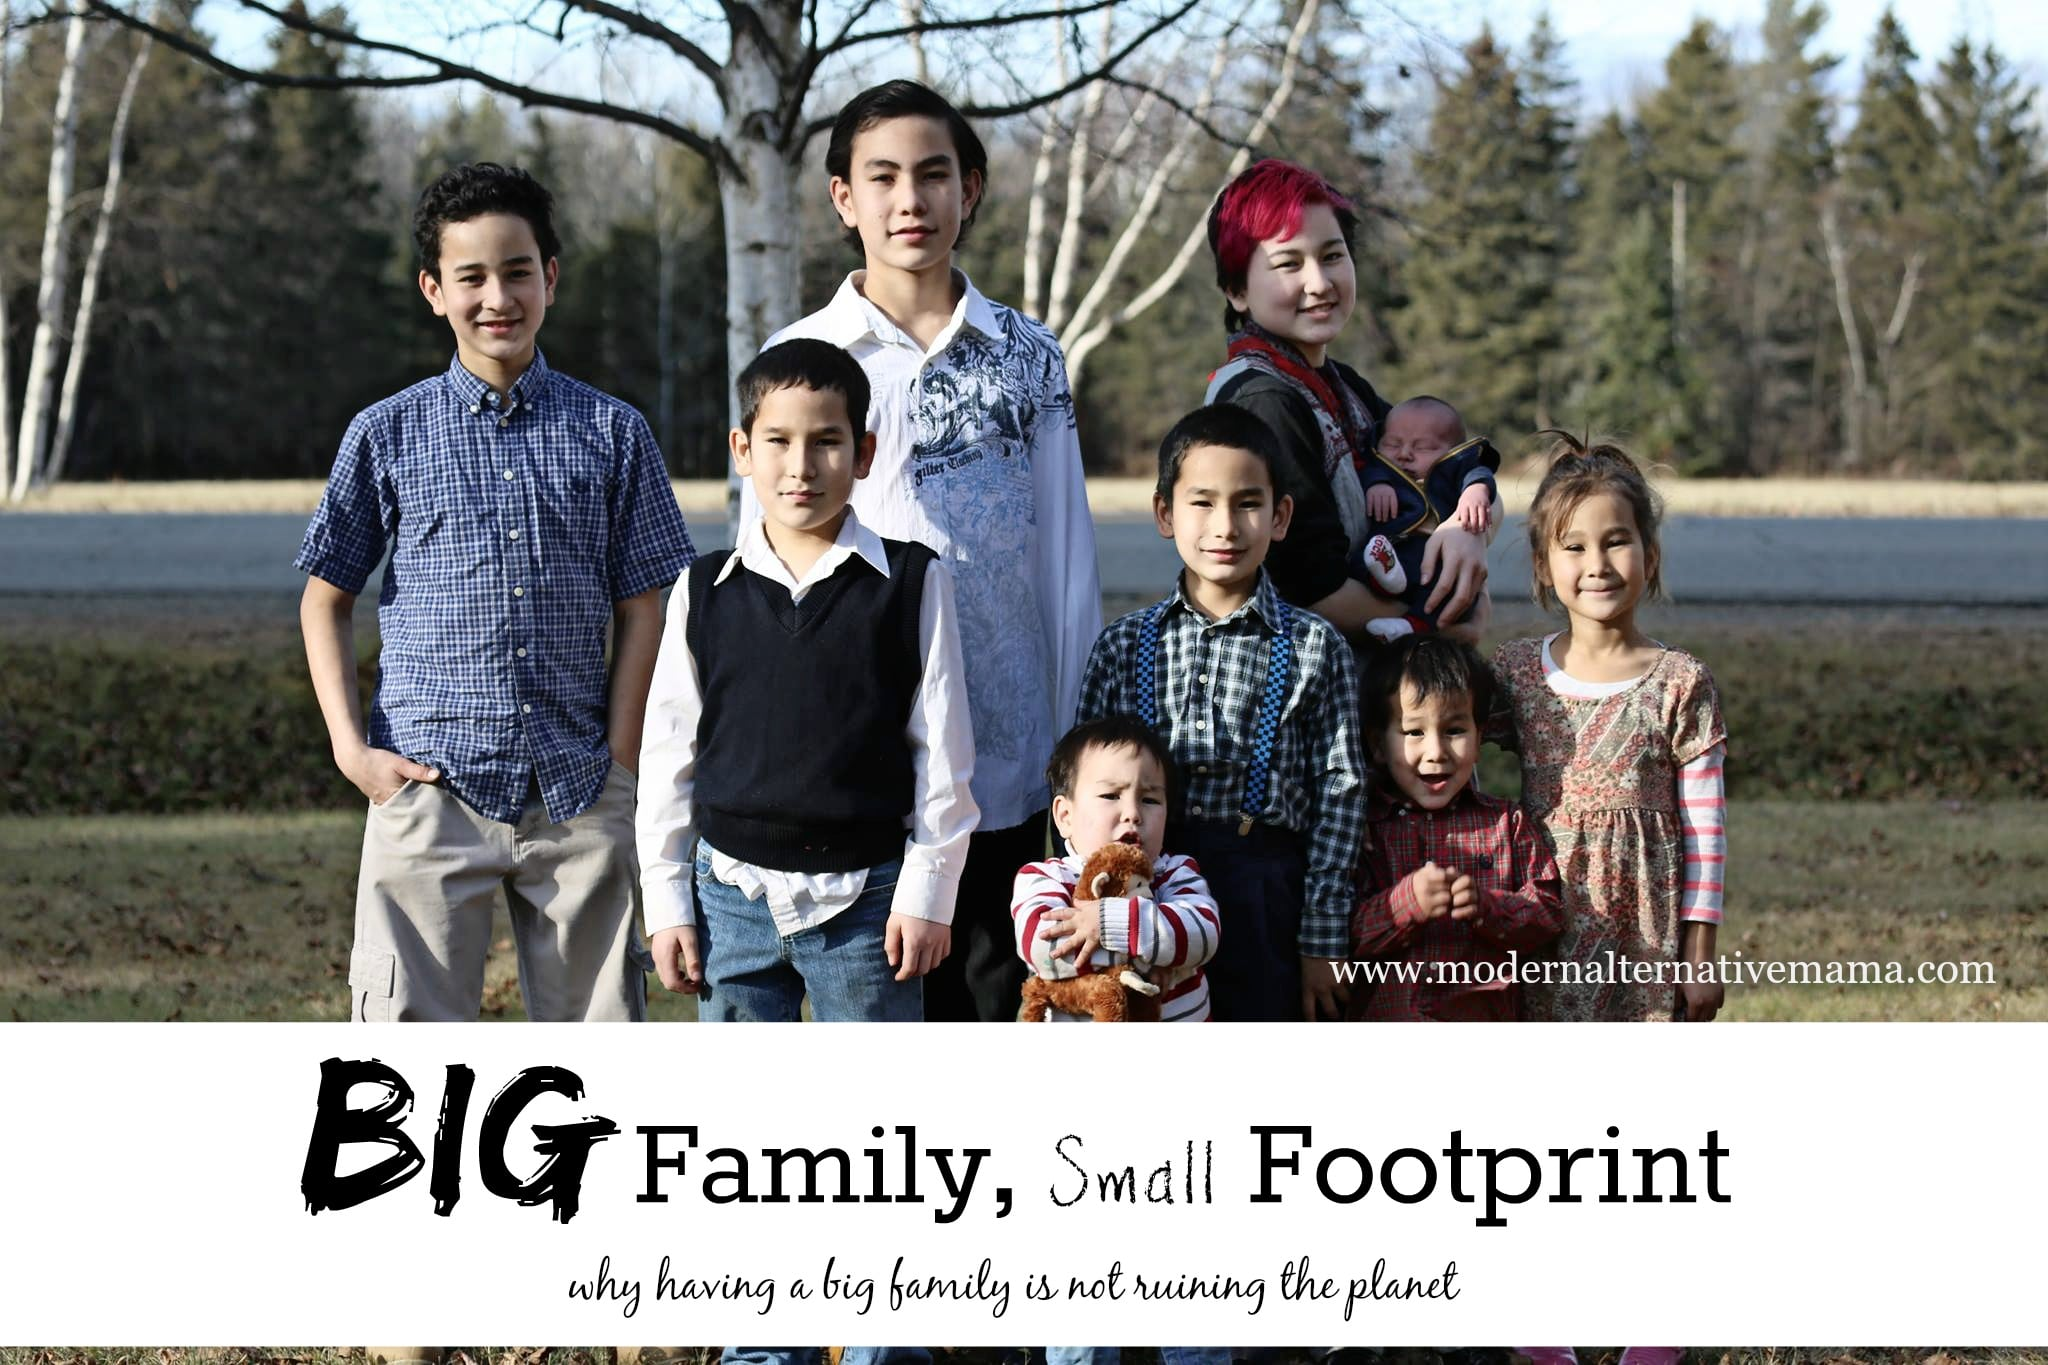 f7459776 Big Family, Small Footprint - Modern Alternative Mama